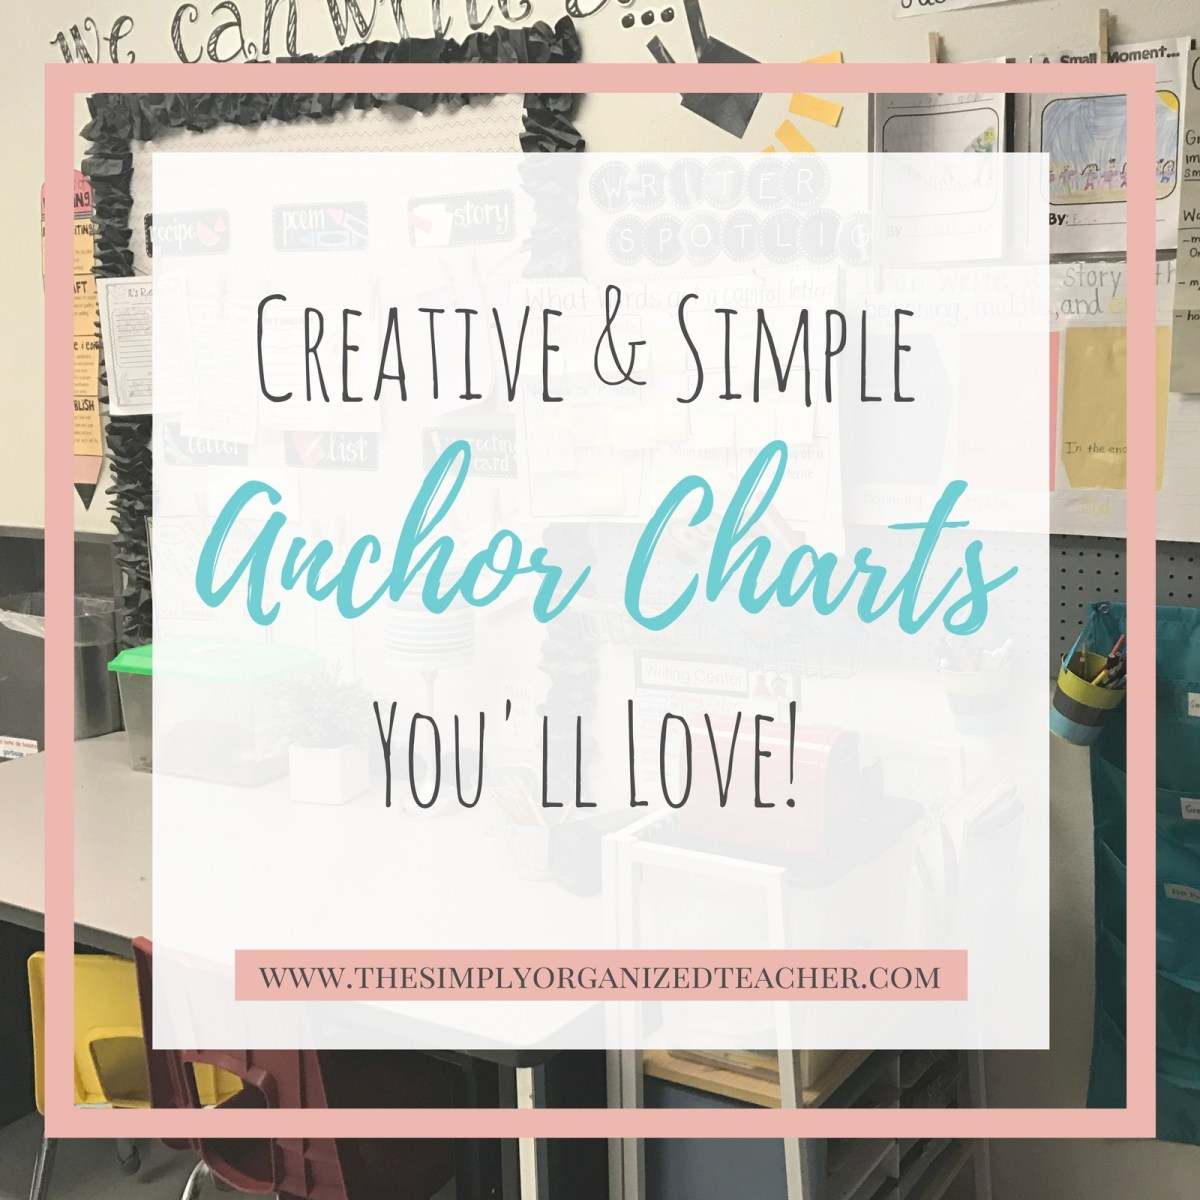 Creative (and simple!) Anchor Chart Ideas You'll Love!